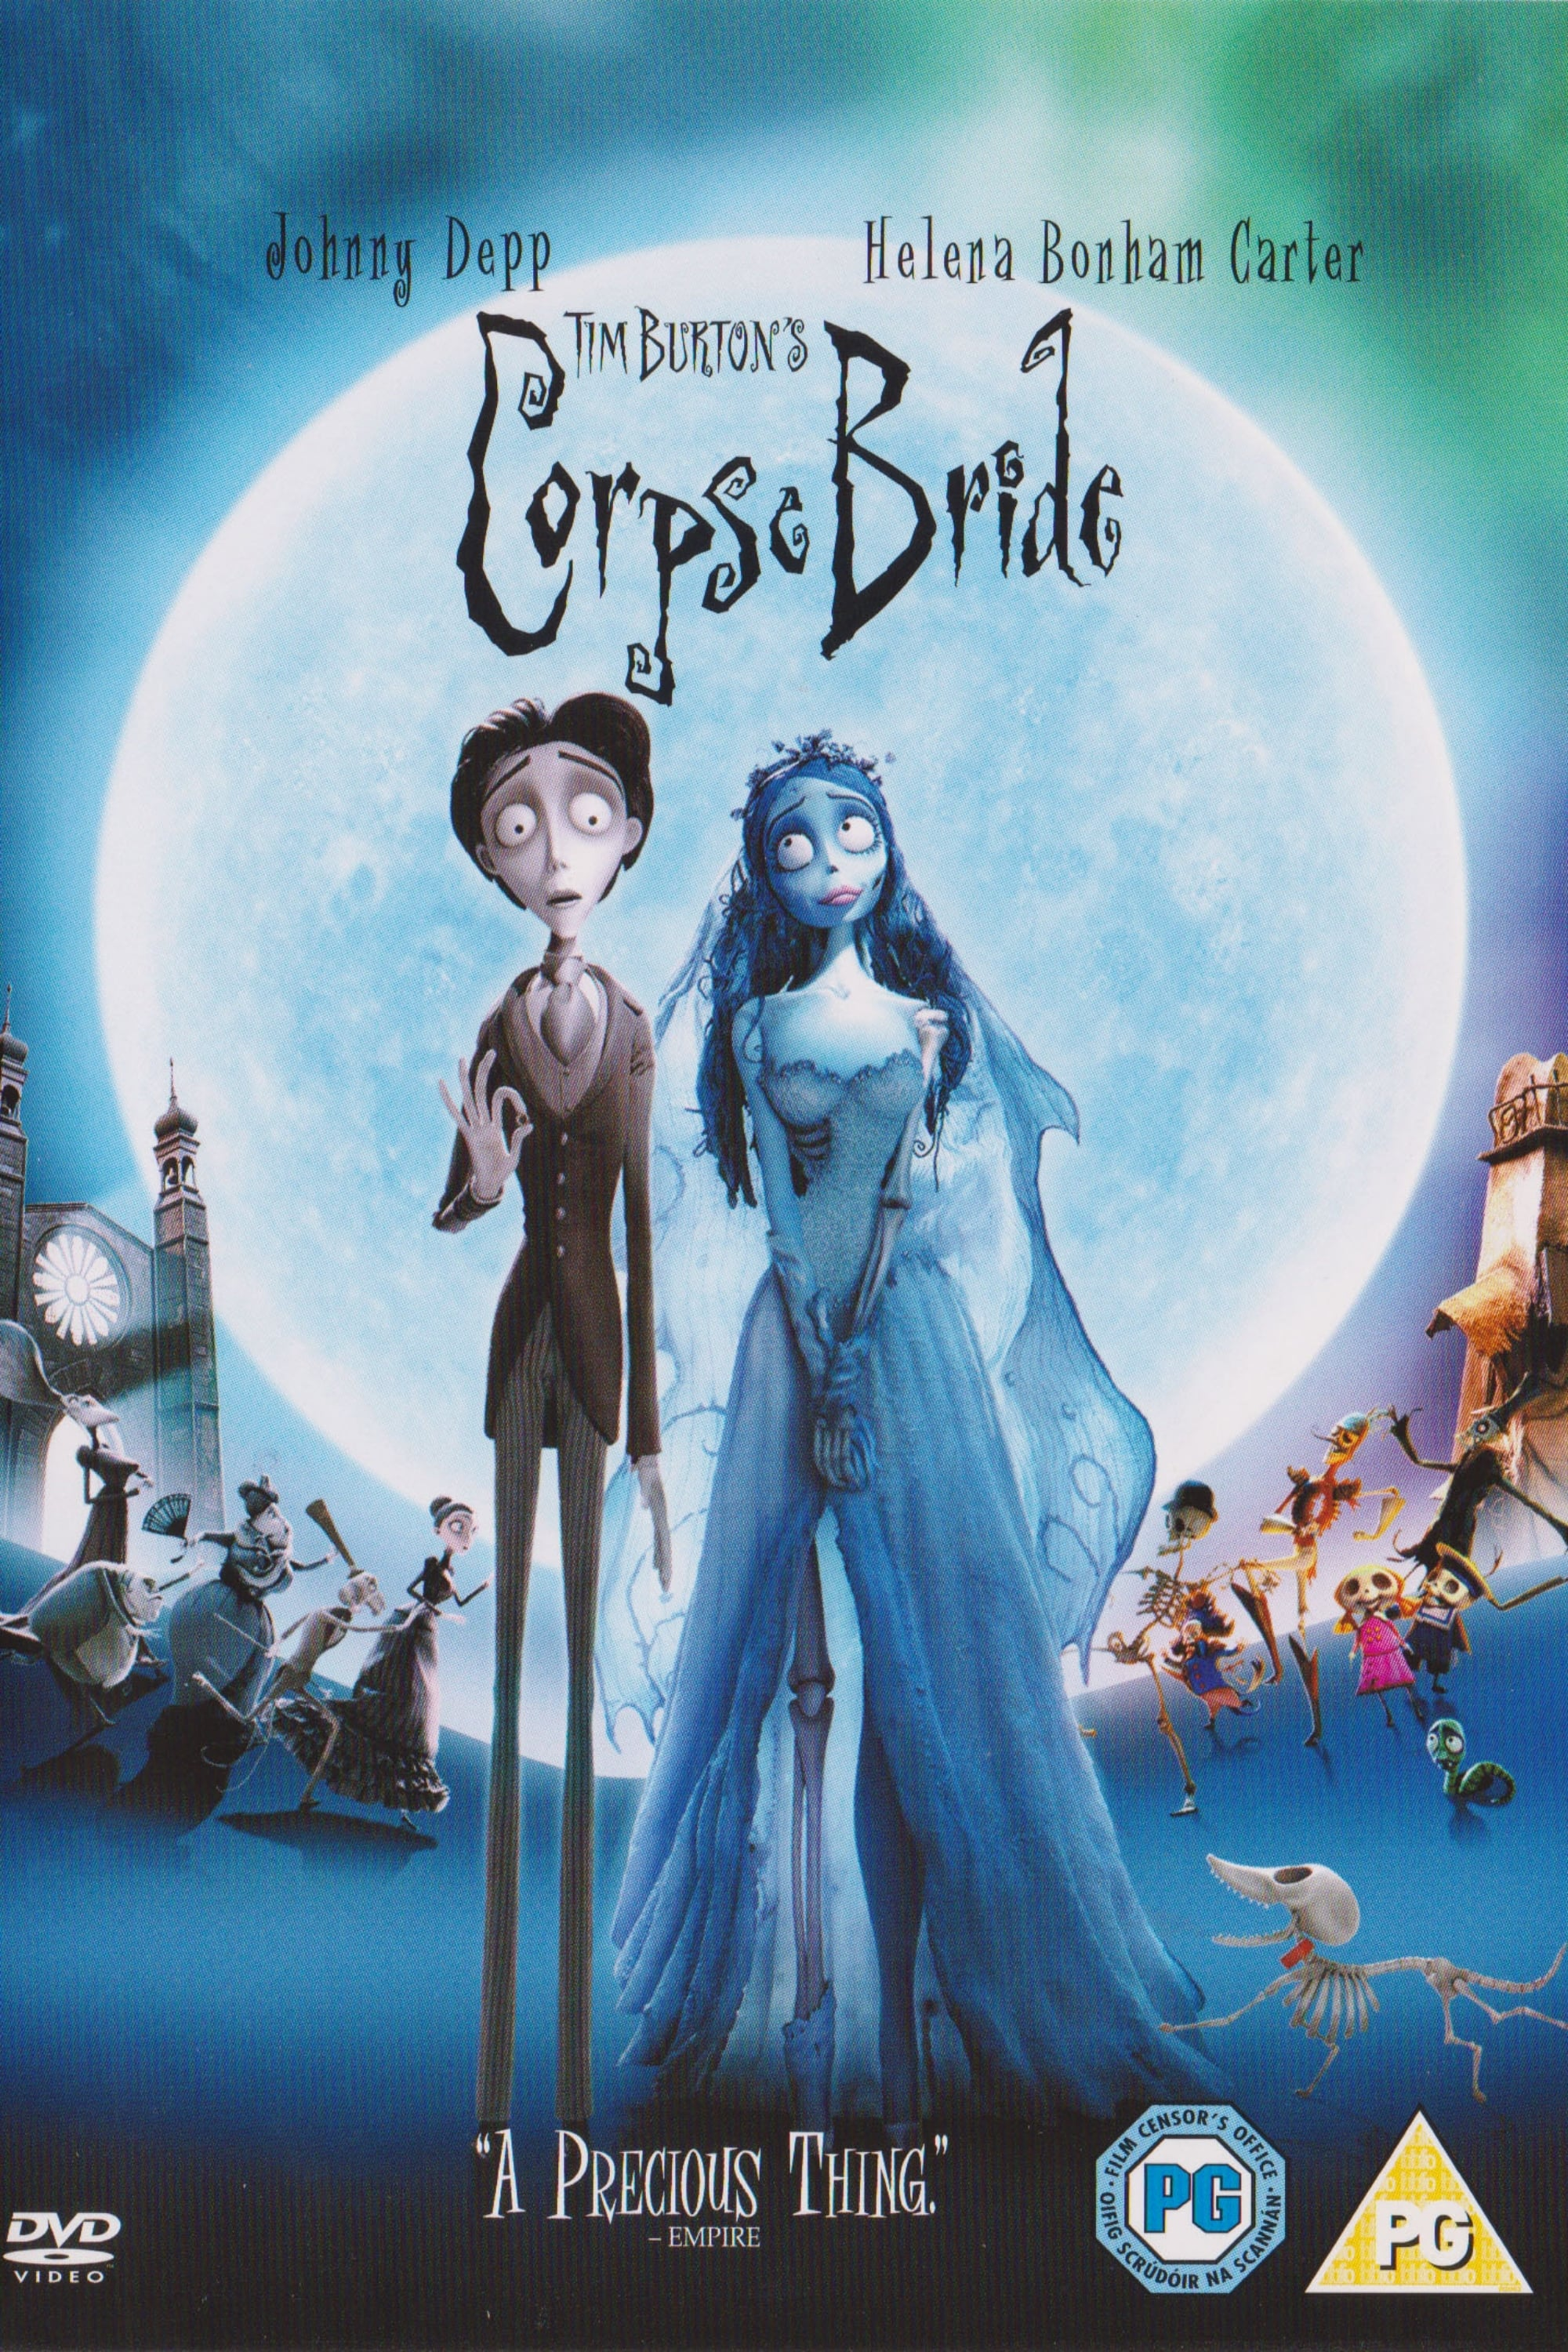 Inside the Two Worlds of 'The Corpse Bride' (2006)